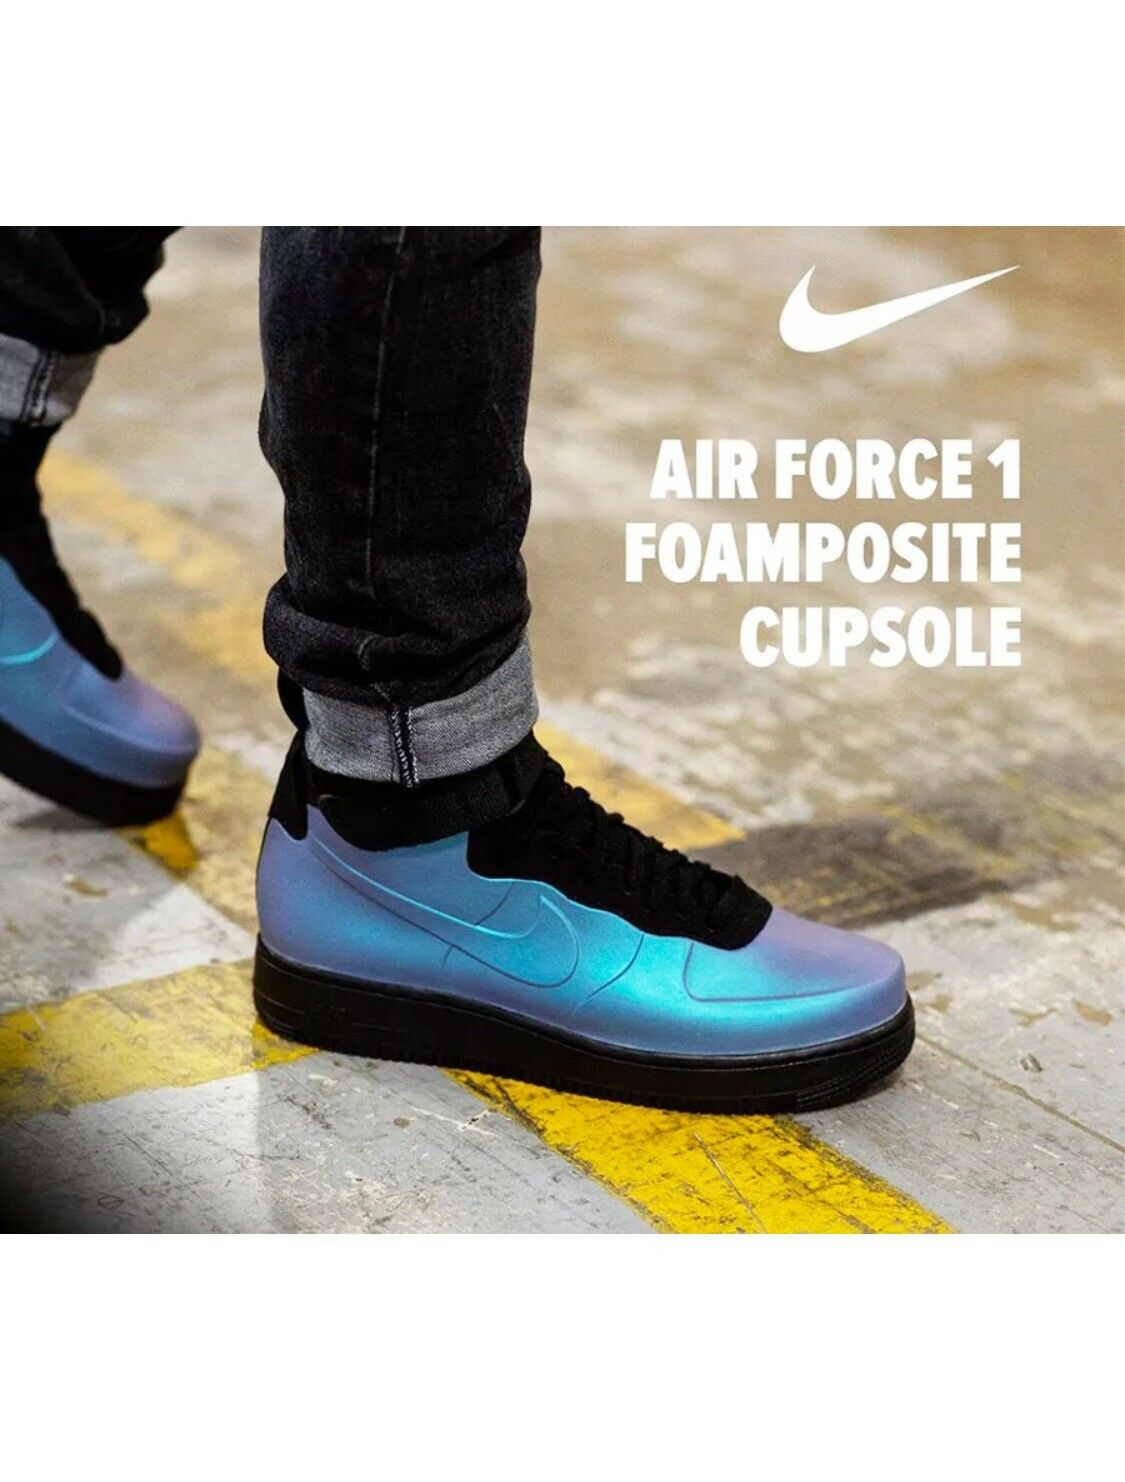 Nike air force 1 - foamposite cup leichtes carbon - multi - 1 farbe ah6771 002 af1  10. 1f49f1